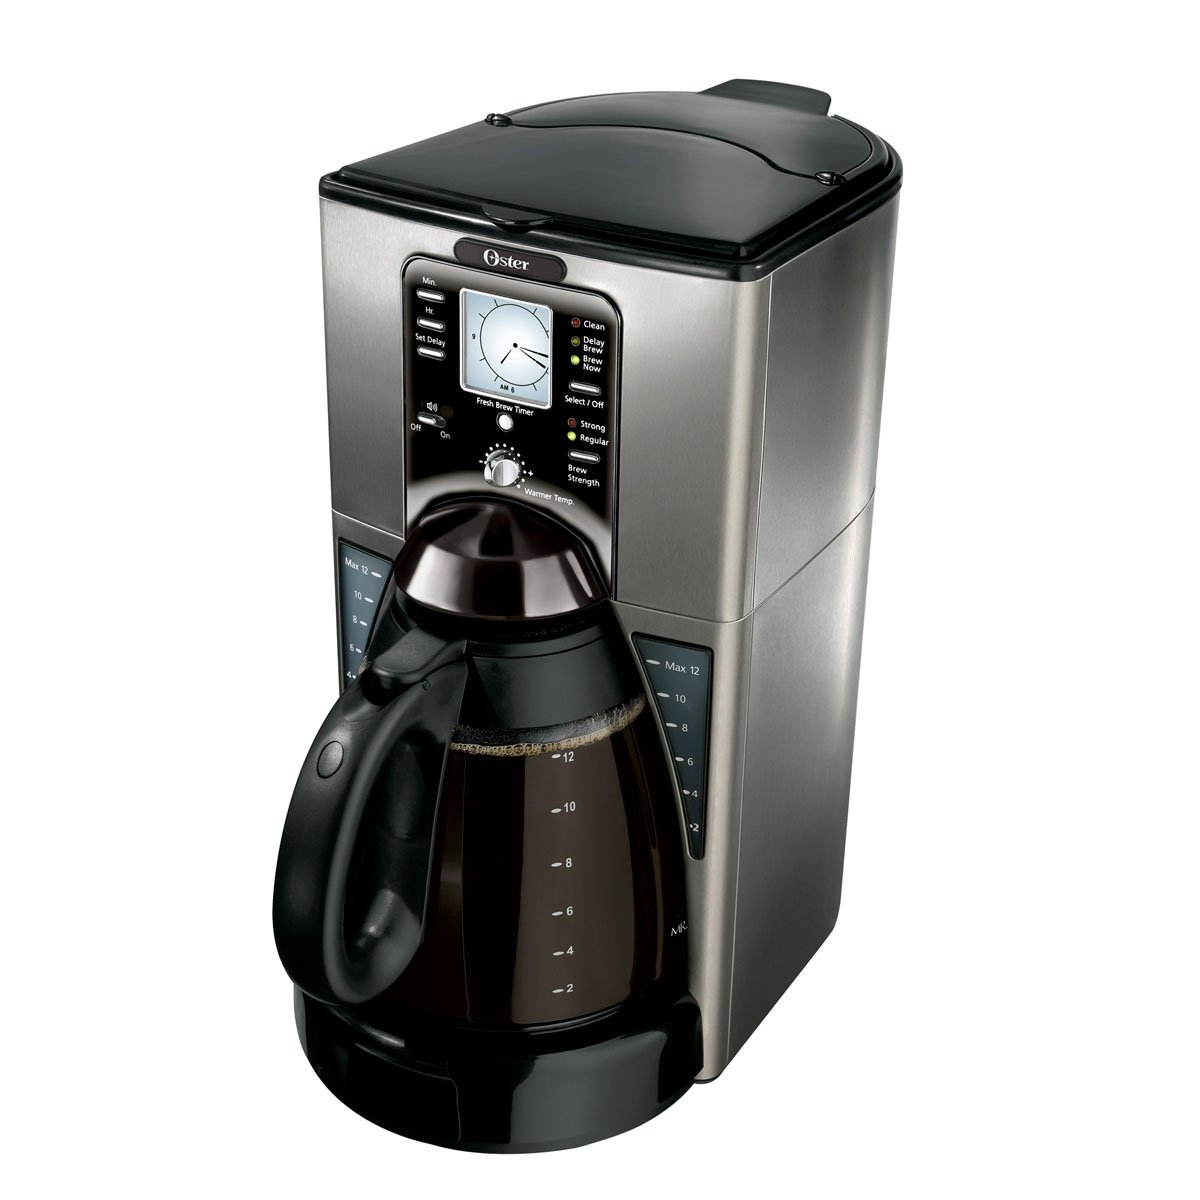 Fix Oster Coffee Maker : Oster 12-cup Programmable Coffee Maker 3309-33 Parts Oster Canada